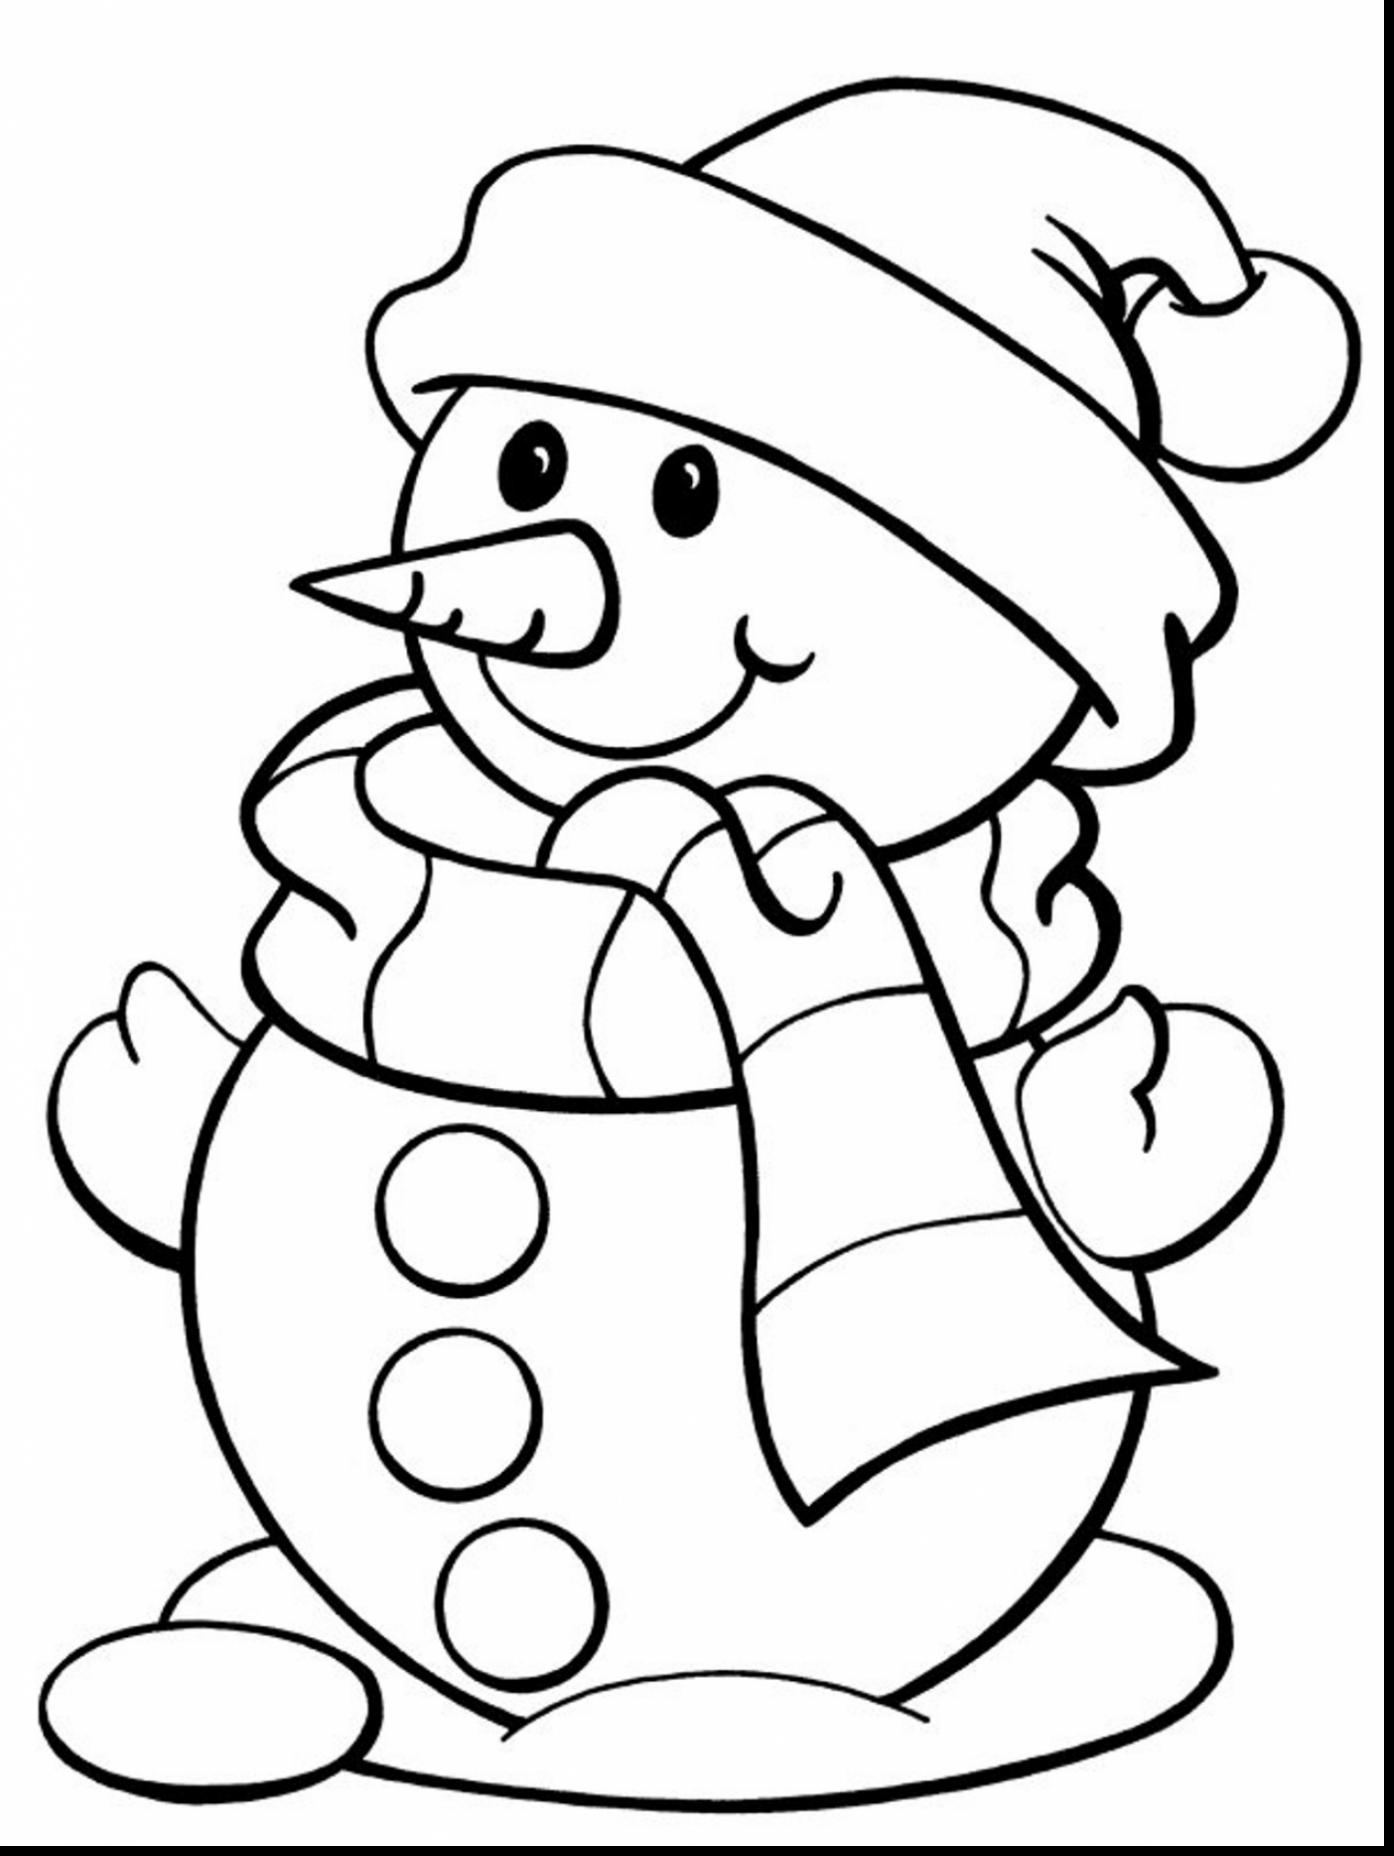 1394x1856 Fresh Outstanding Printable Snowman Coloring Pages With Winter